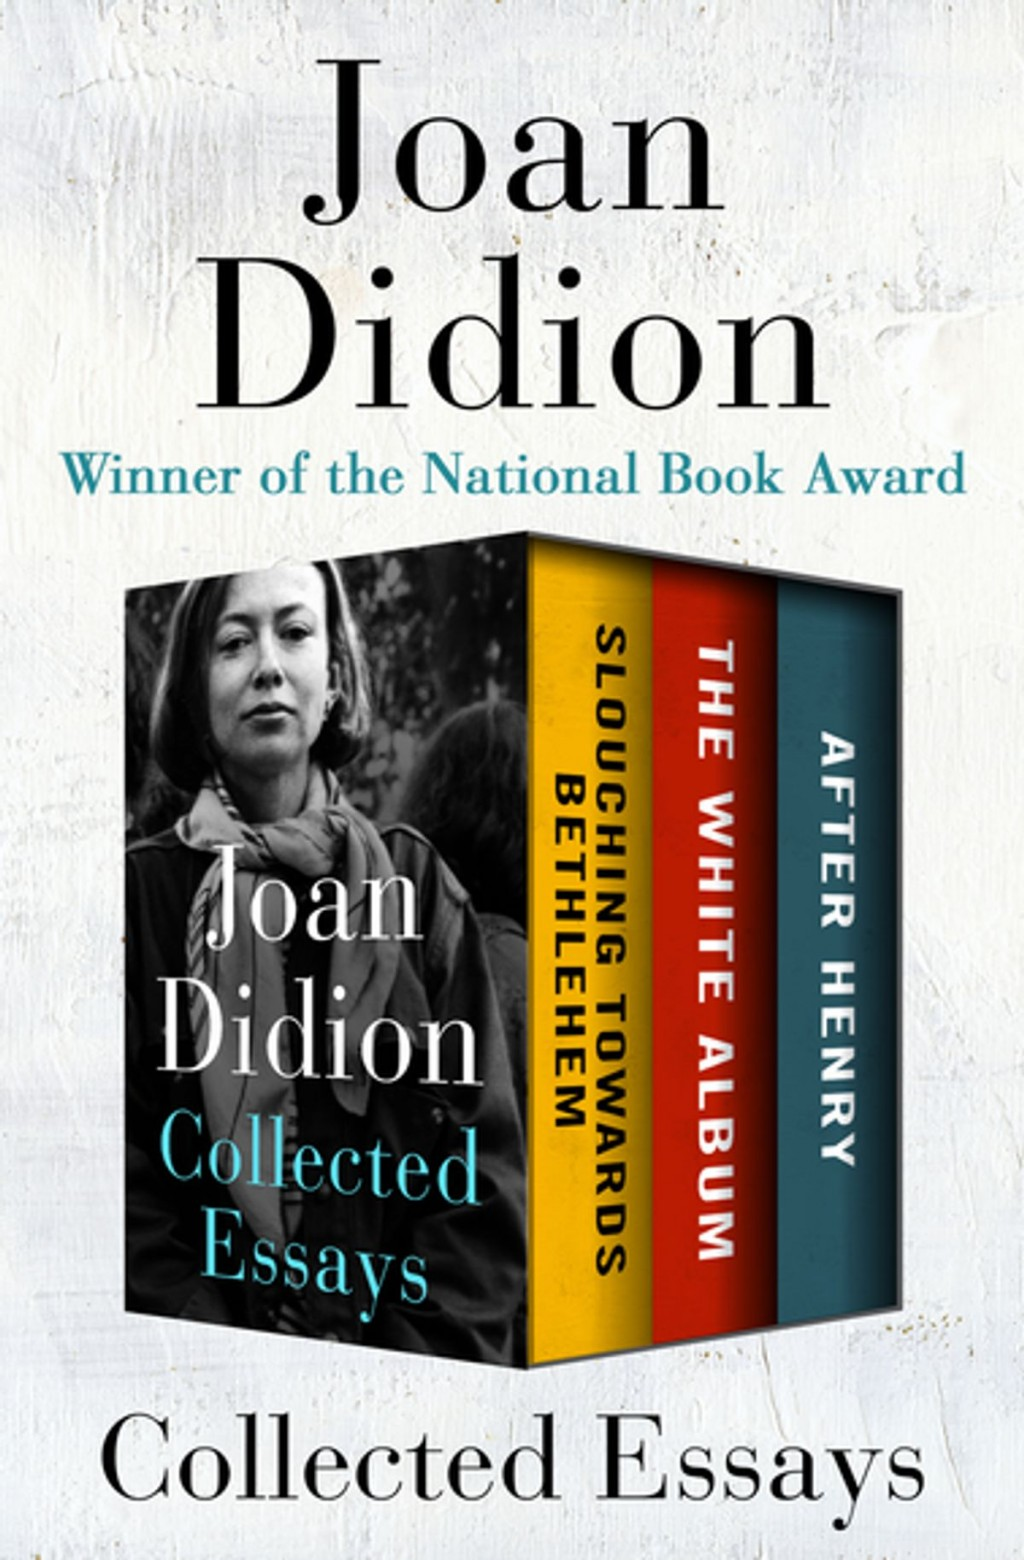 010 Collected Essays Joan Didion Essay Singular Collections On Santa Ana Winds Amazon Large